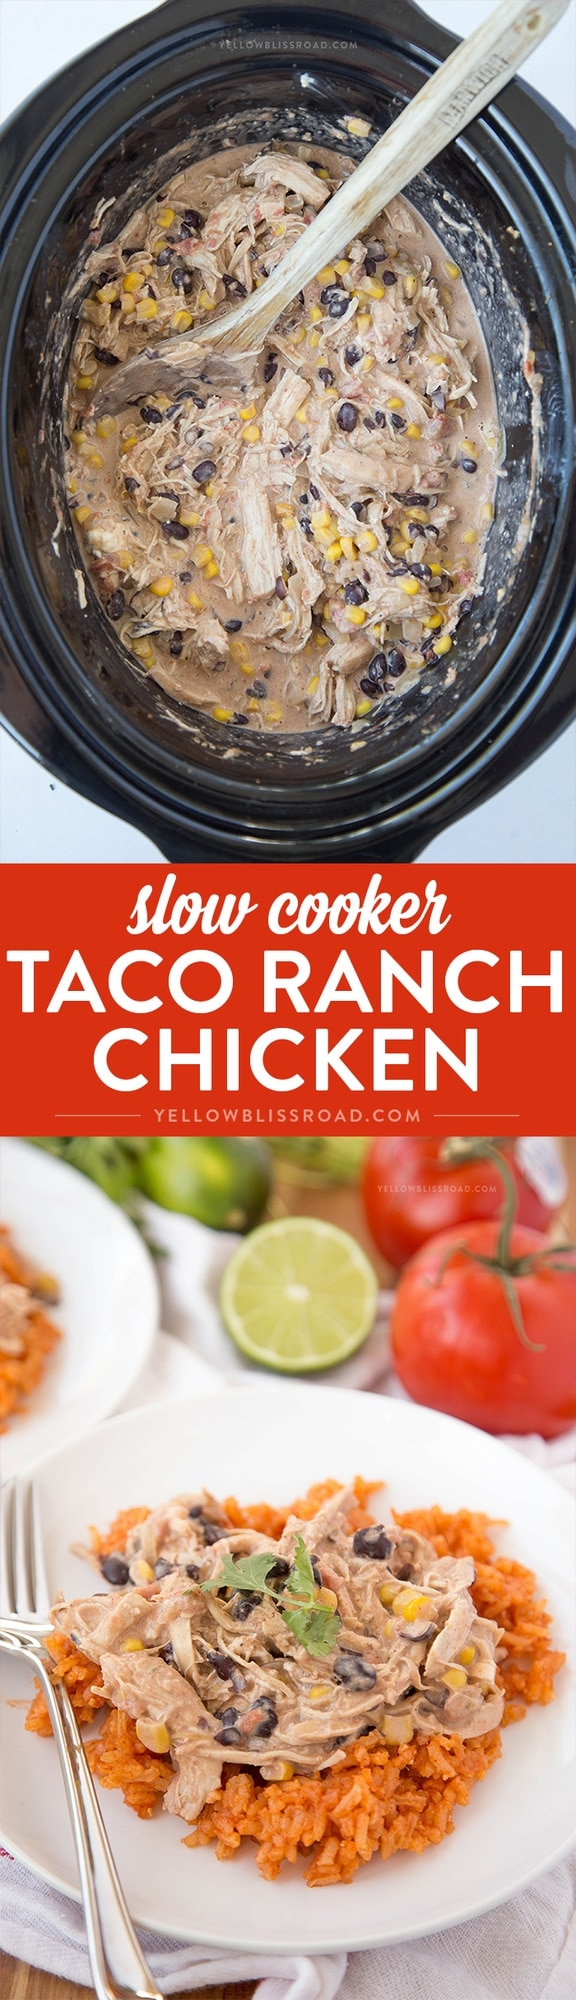 Slow Cooker Taco Ranch Chicken - pinterest friendly collage